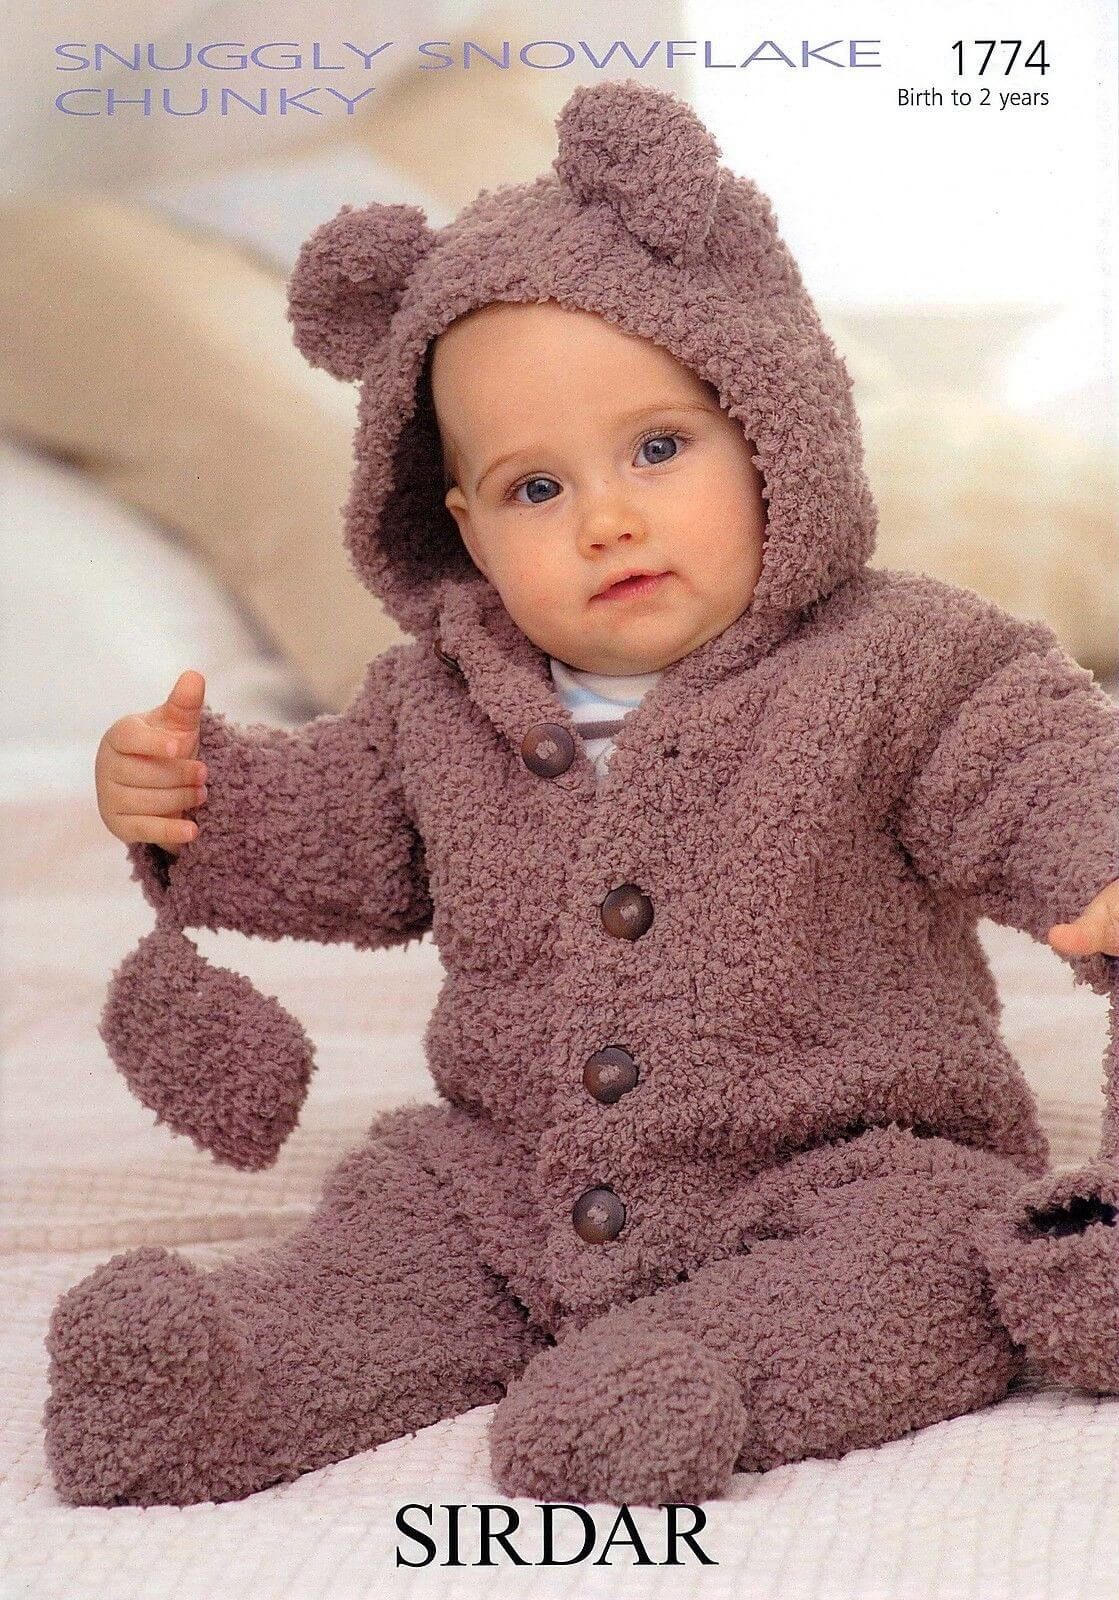 Sirdar Knitting Pattern 1774 Baby Bear Onesie With Mittens 0-2 Years